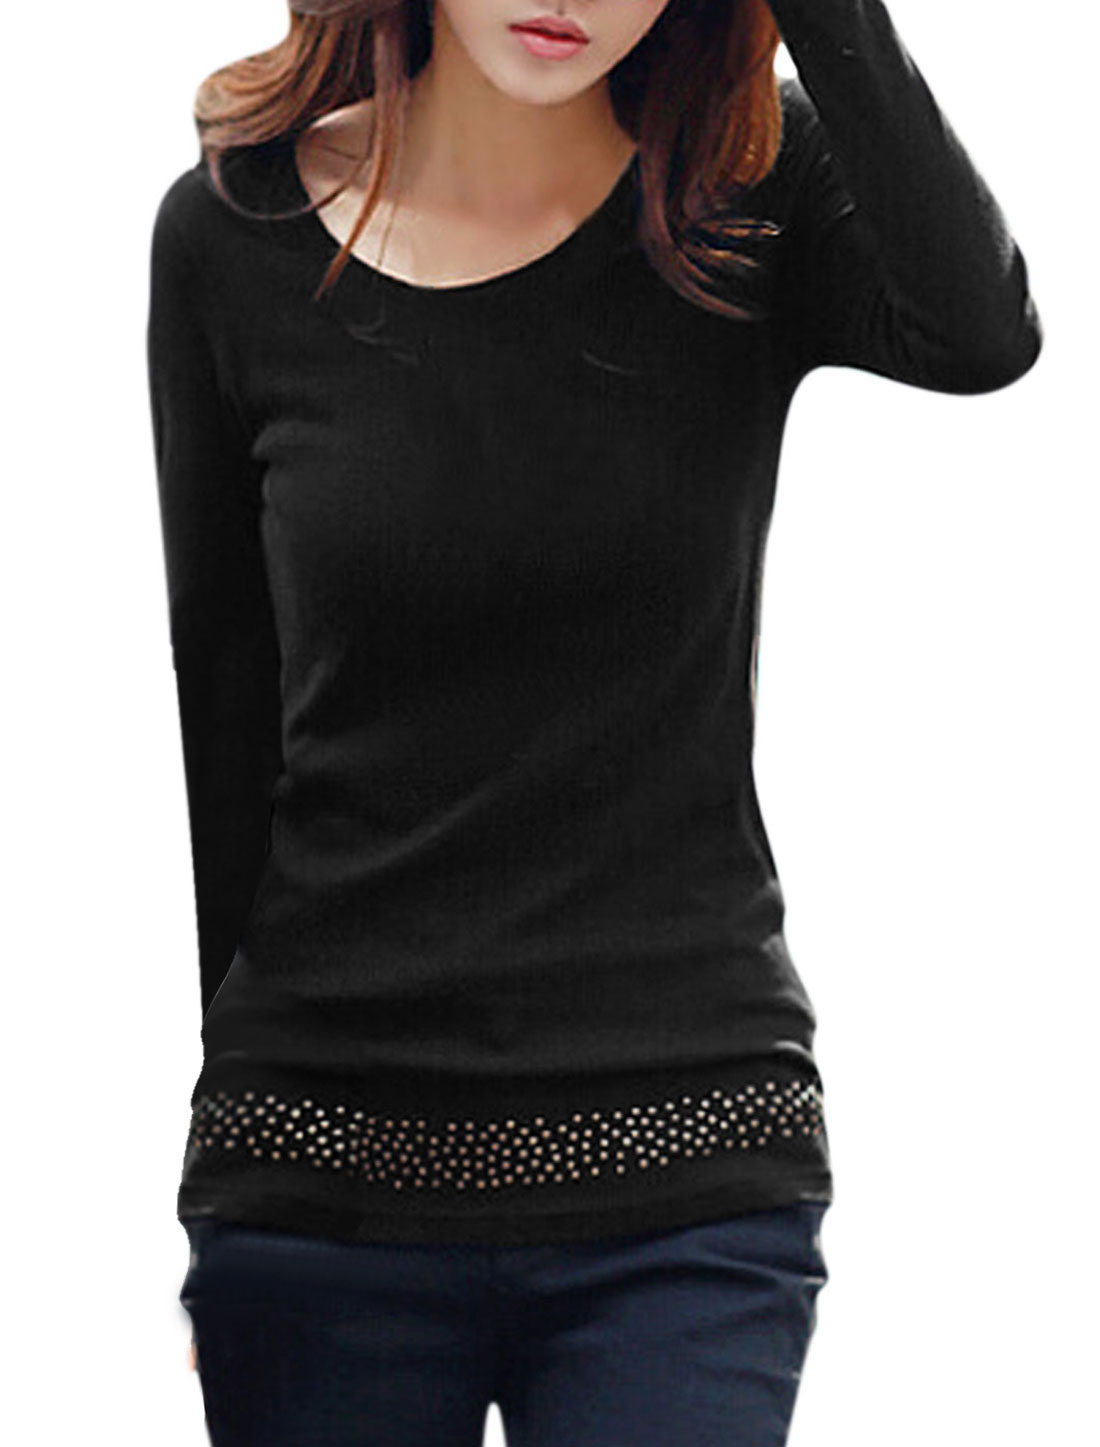 Round Neck Rivet Embellished Pullover Casual Tunic Shirt for Women Black M